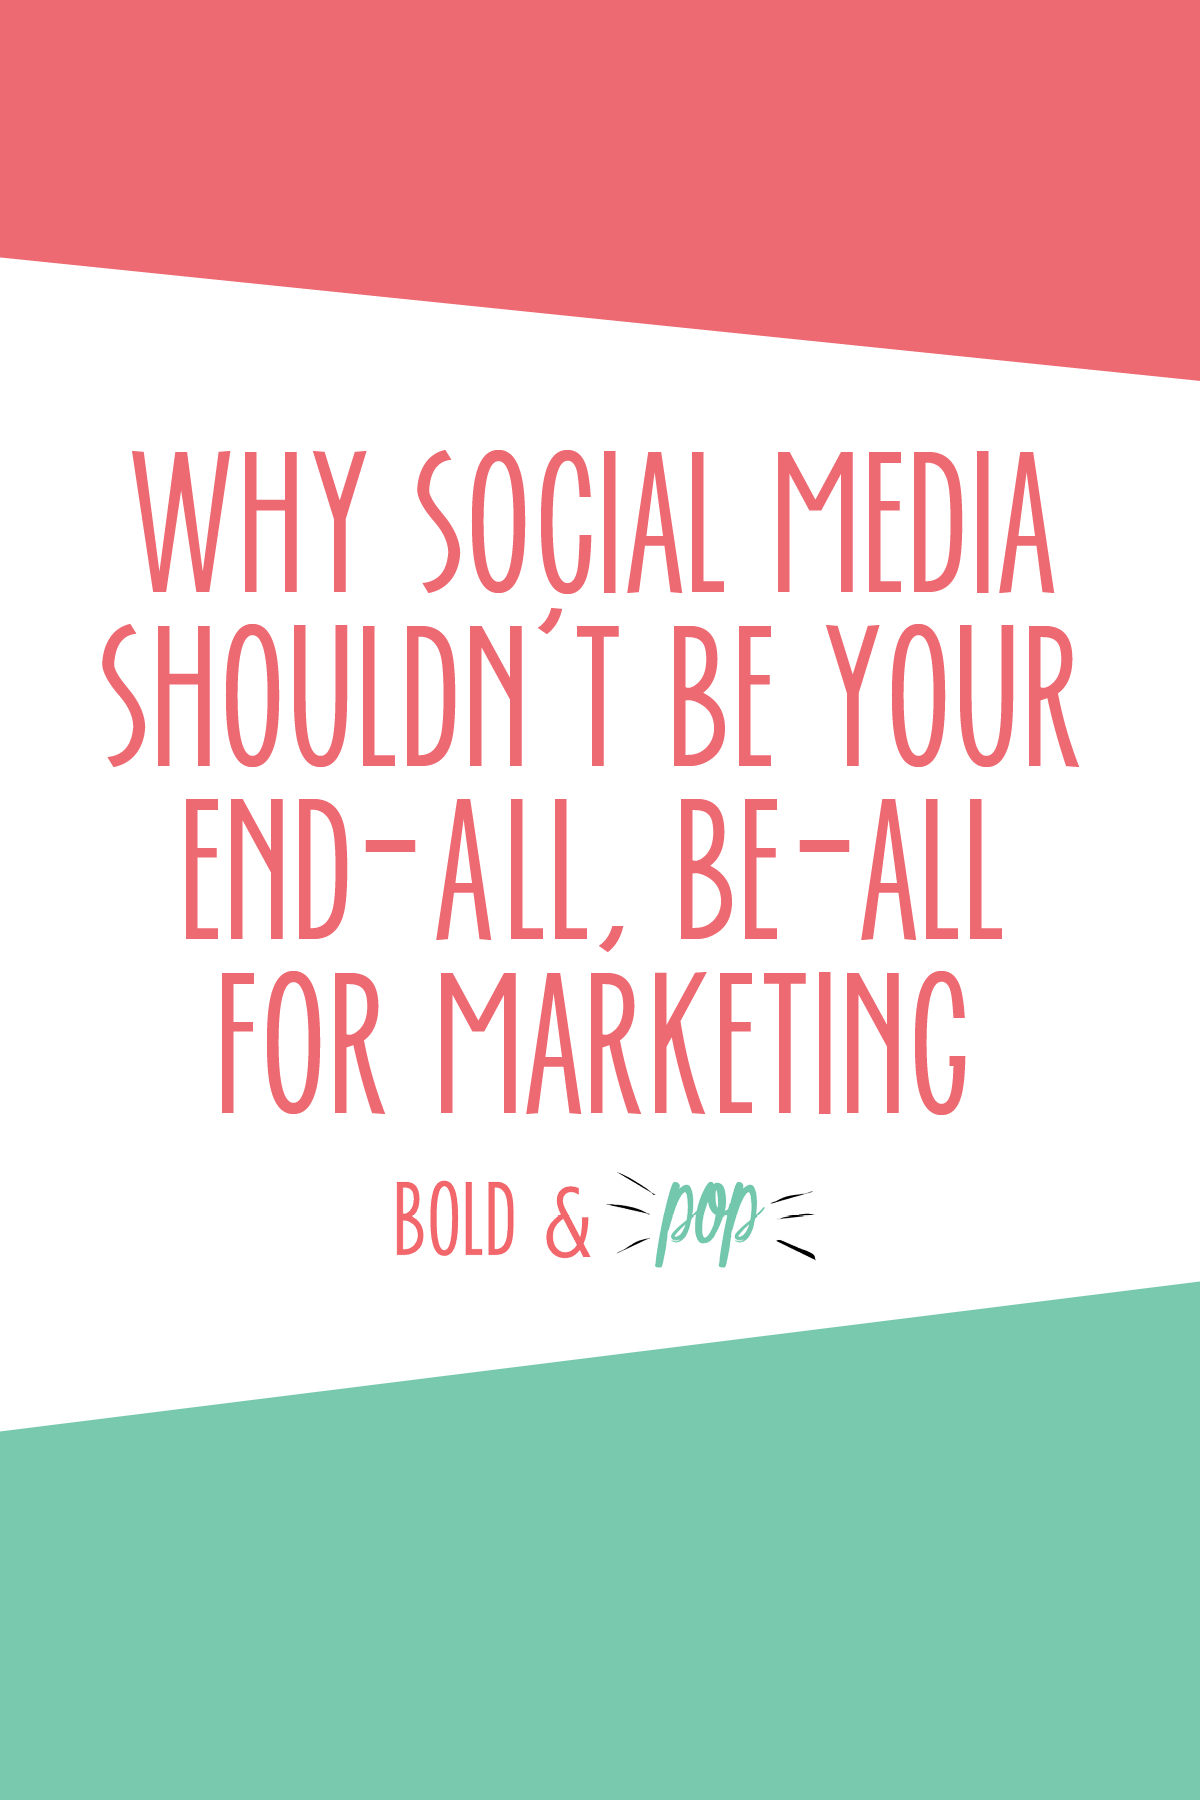 Bold & Pop : Why Social Media Shouldn't Be Your End-All, Be-All for Marketing